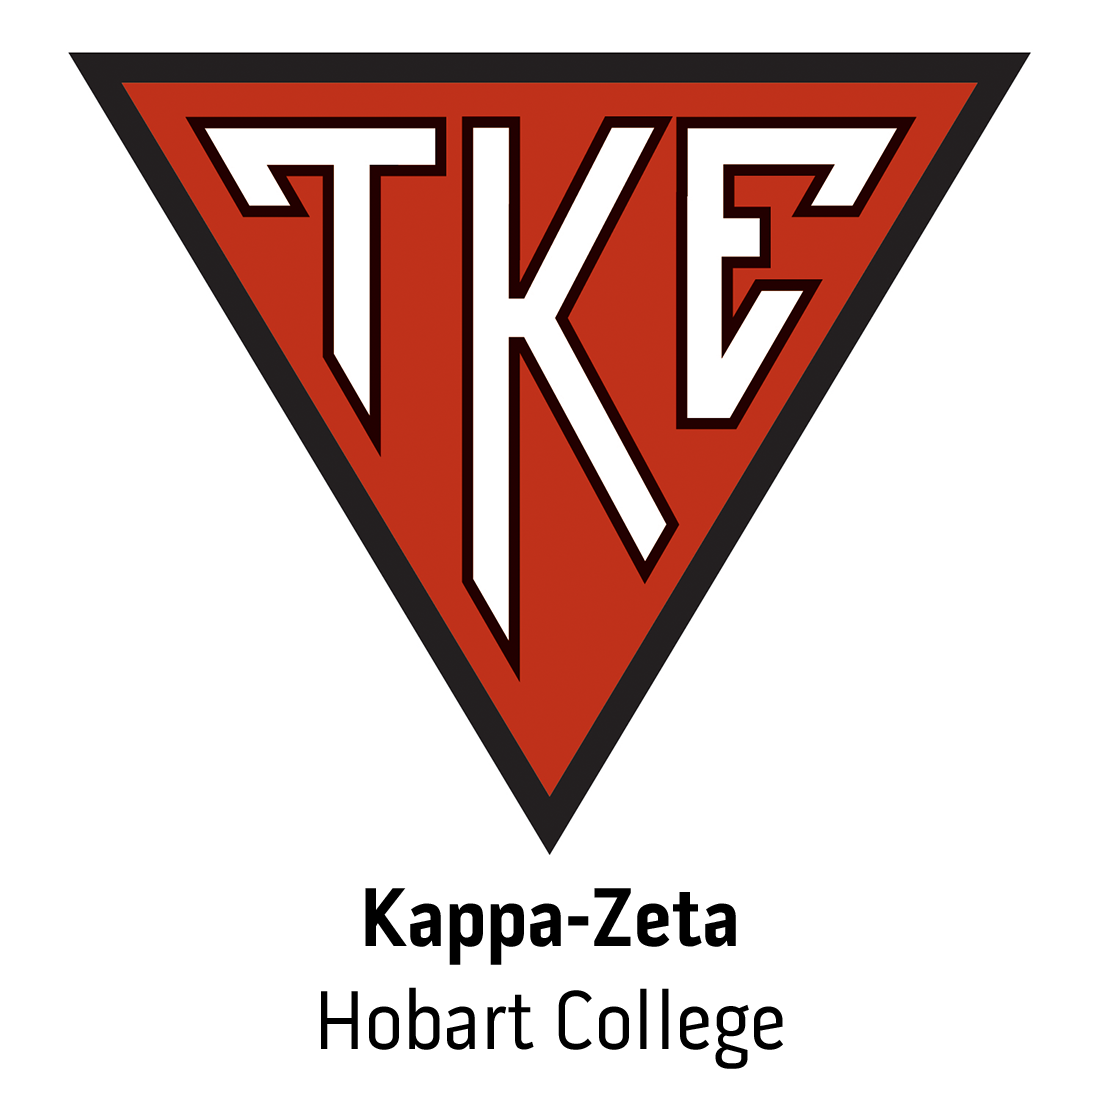 Kappa-Zeta Colony at Hobart and William Smith Colleges